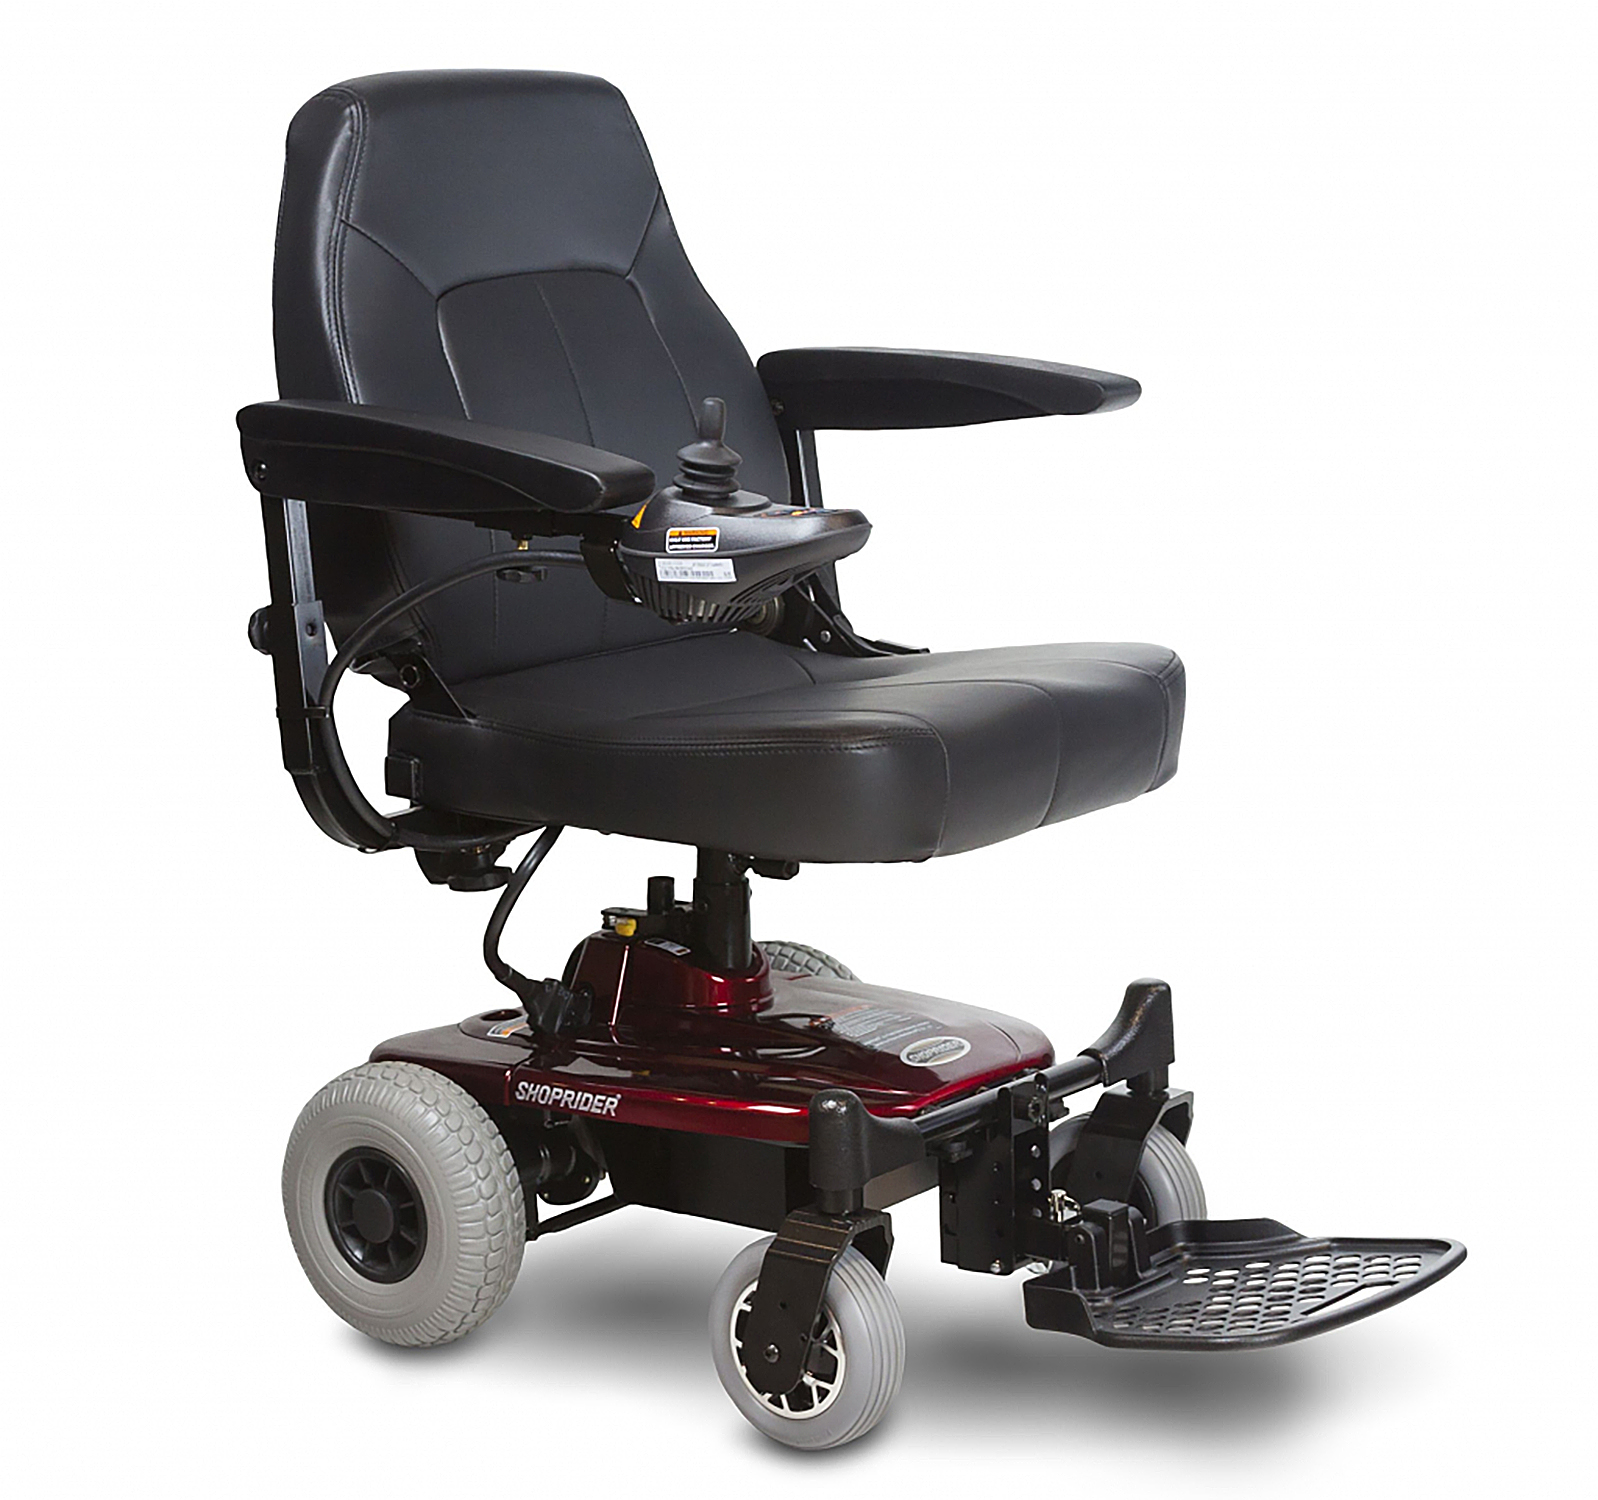 Shoprider Jimmie Powerchair w/Captain Seat 4-Wheel Rear Drive Lightweight - 250lbs